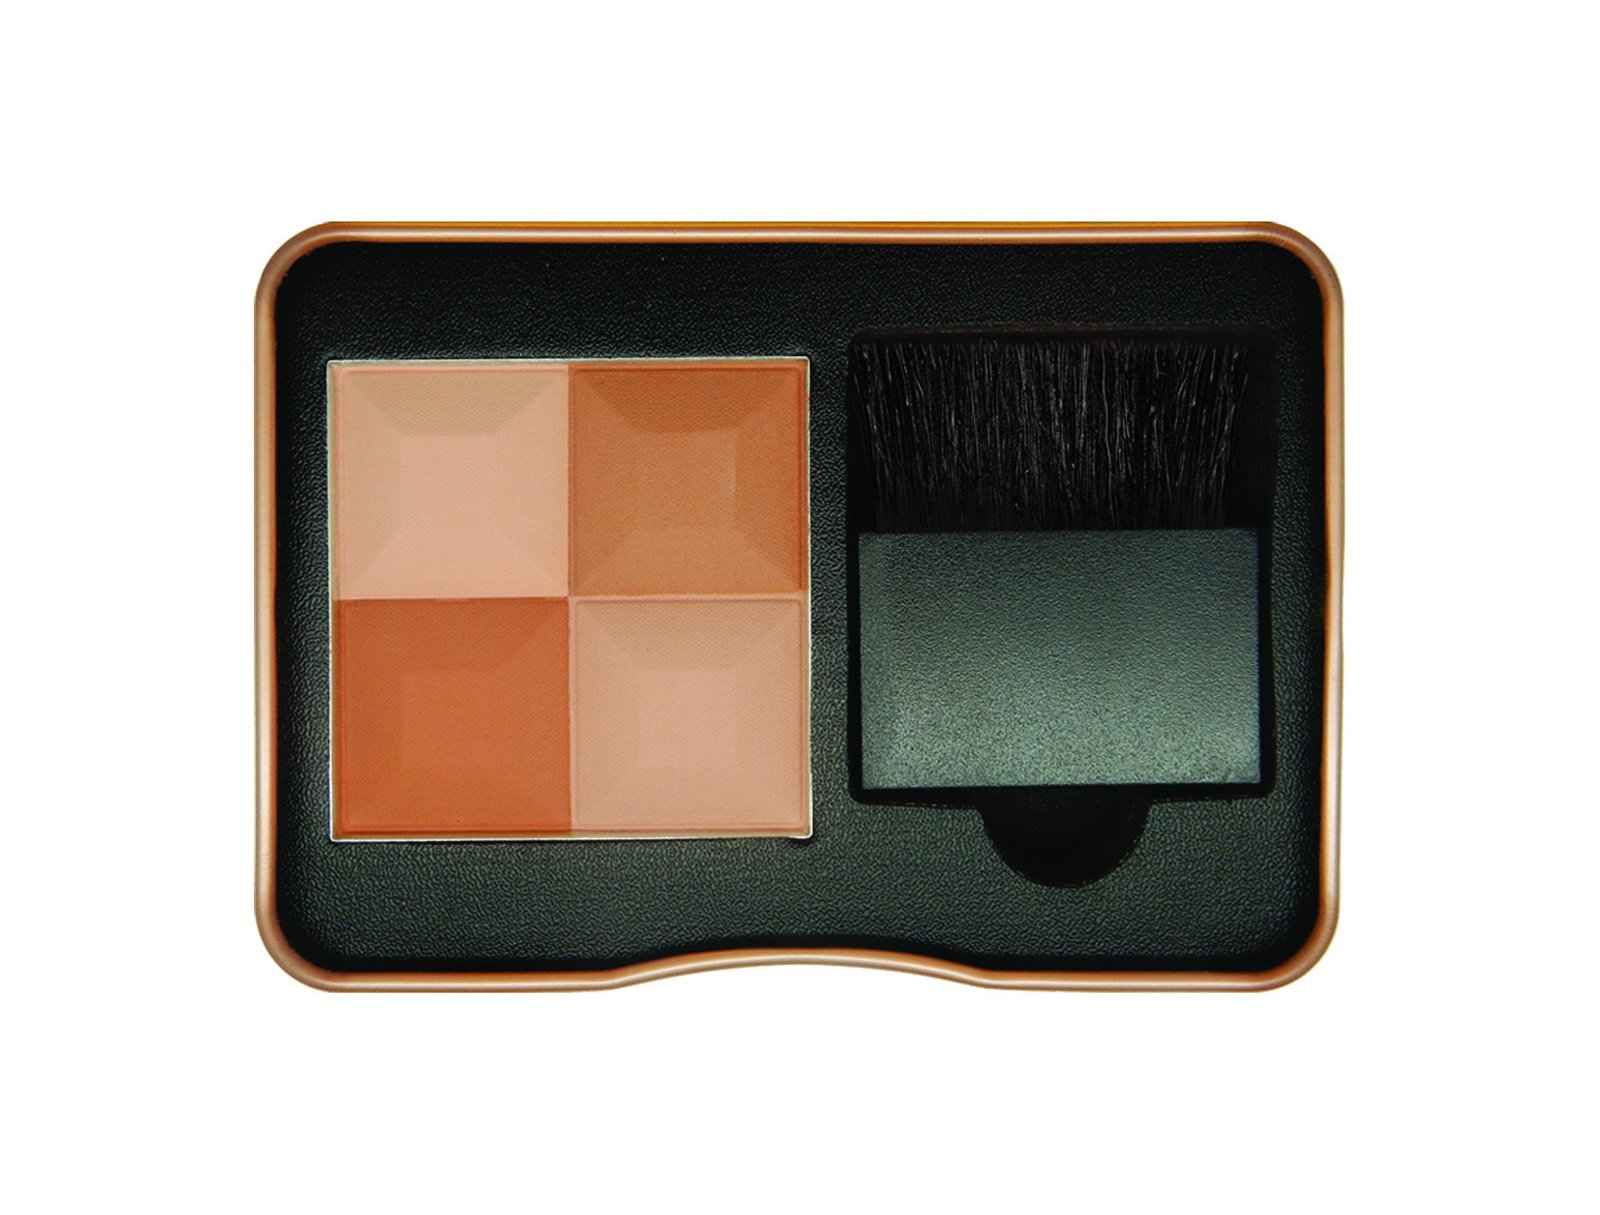 W7 Blush with Me Colour Cube (Cassie Mac) image